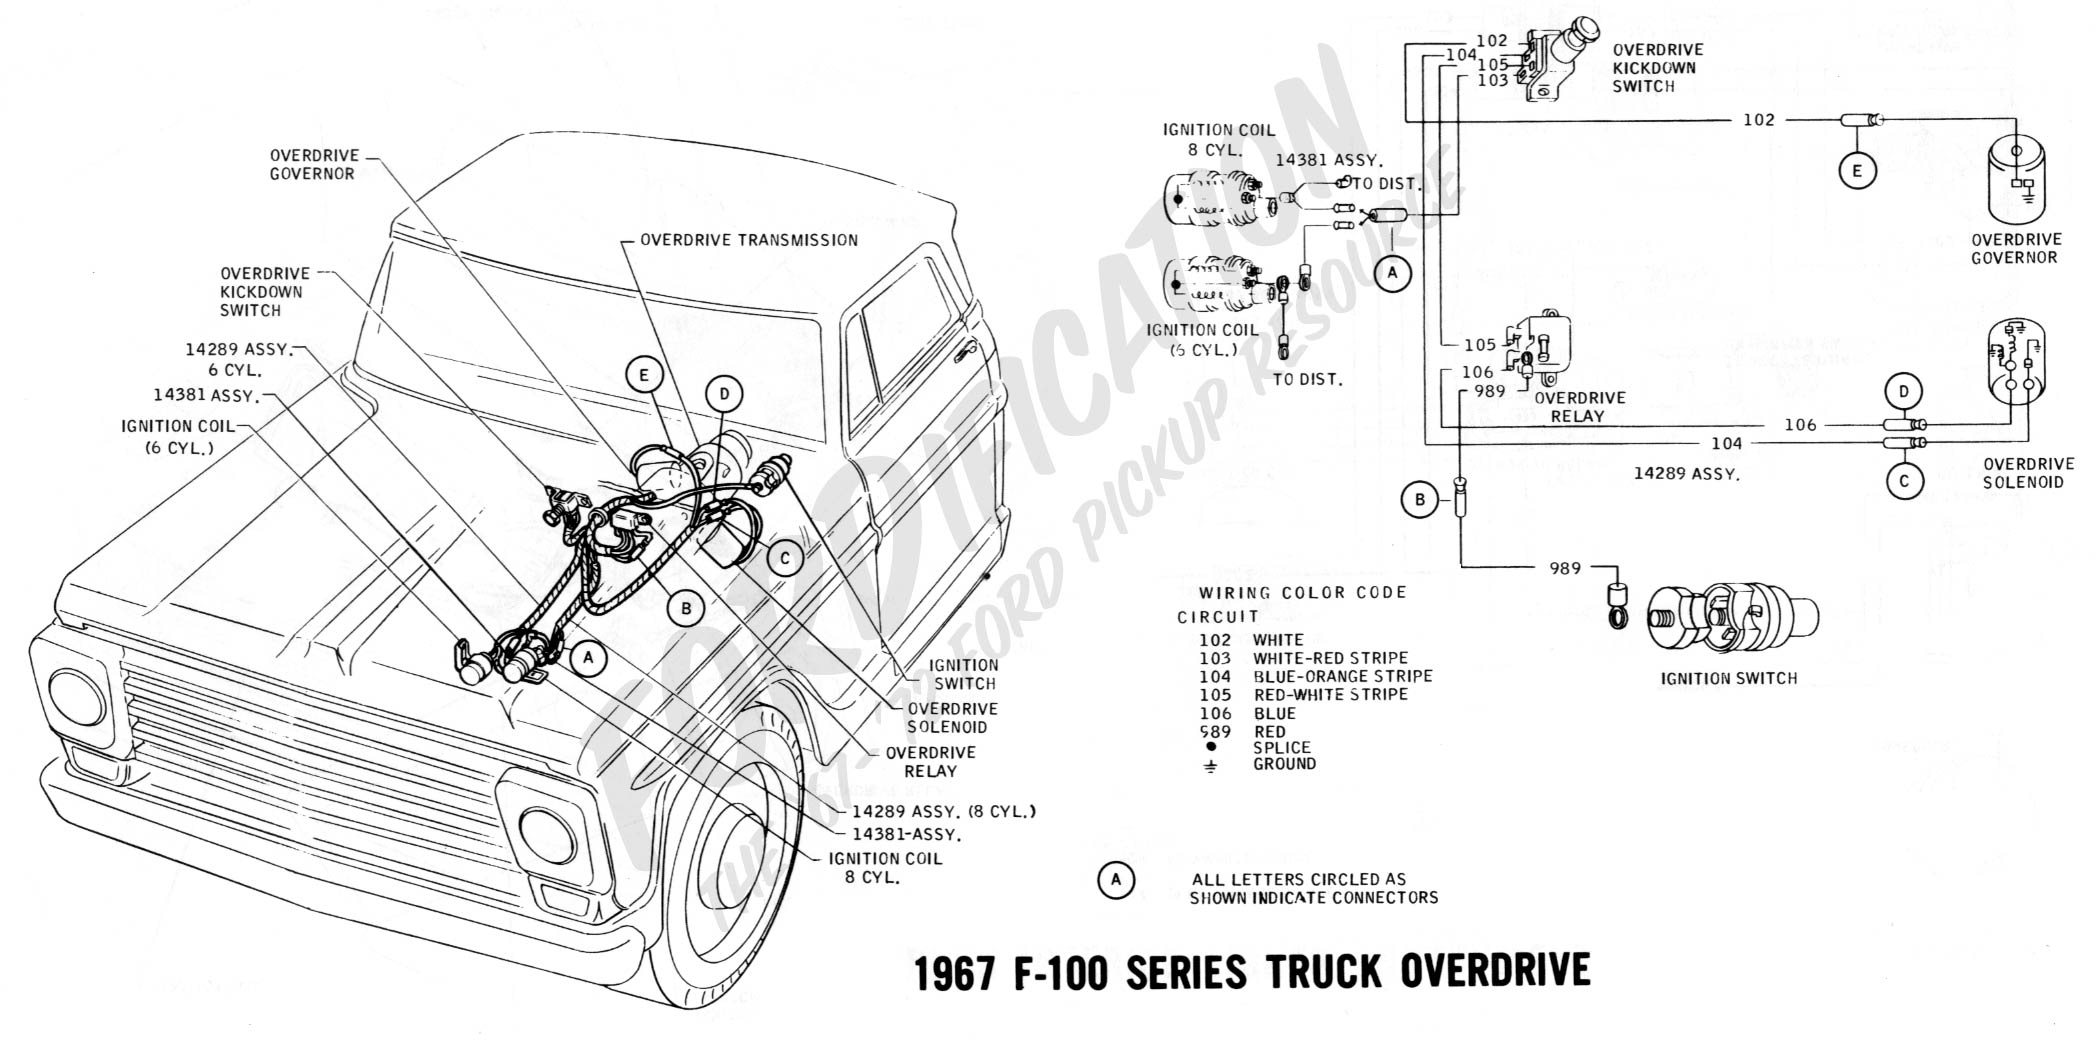 Schematics h on 1966 ford mustang color wiring diagram